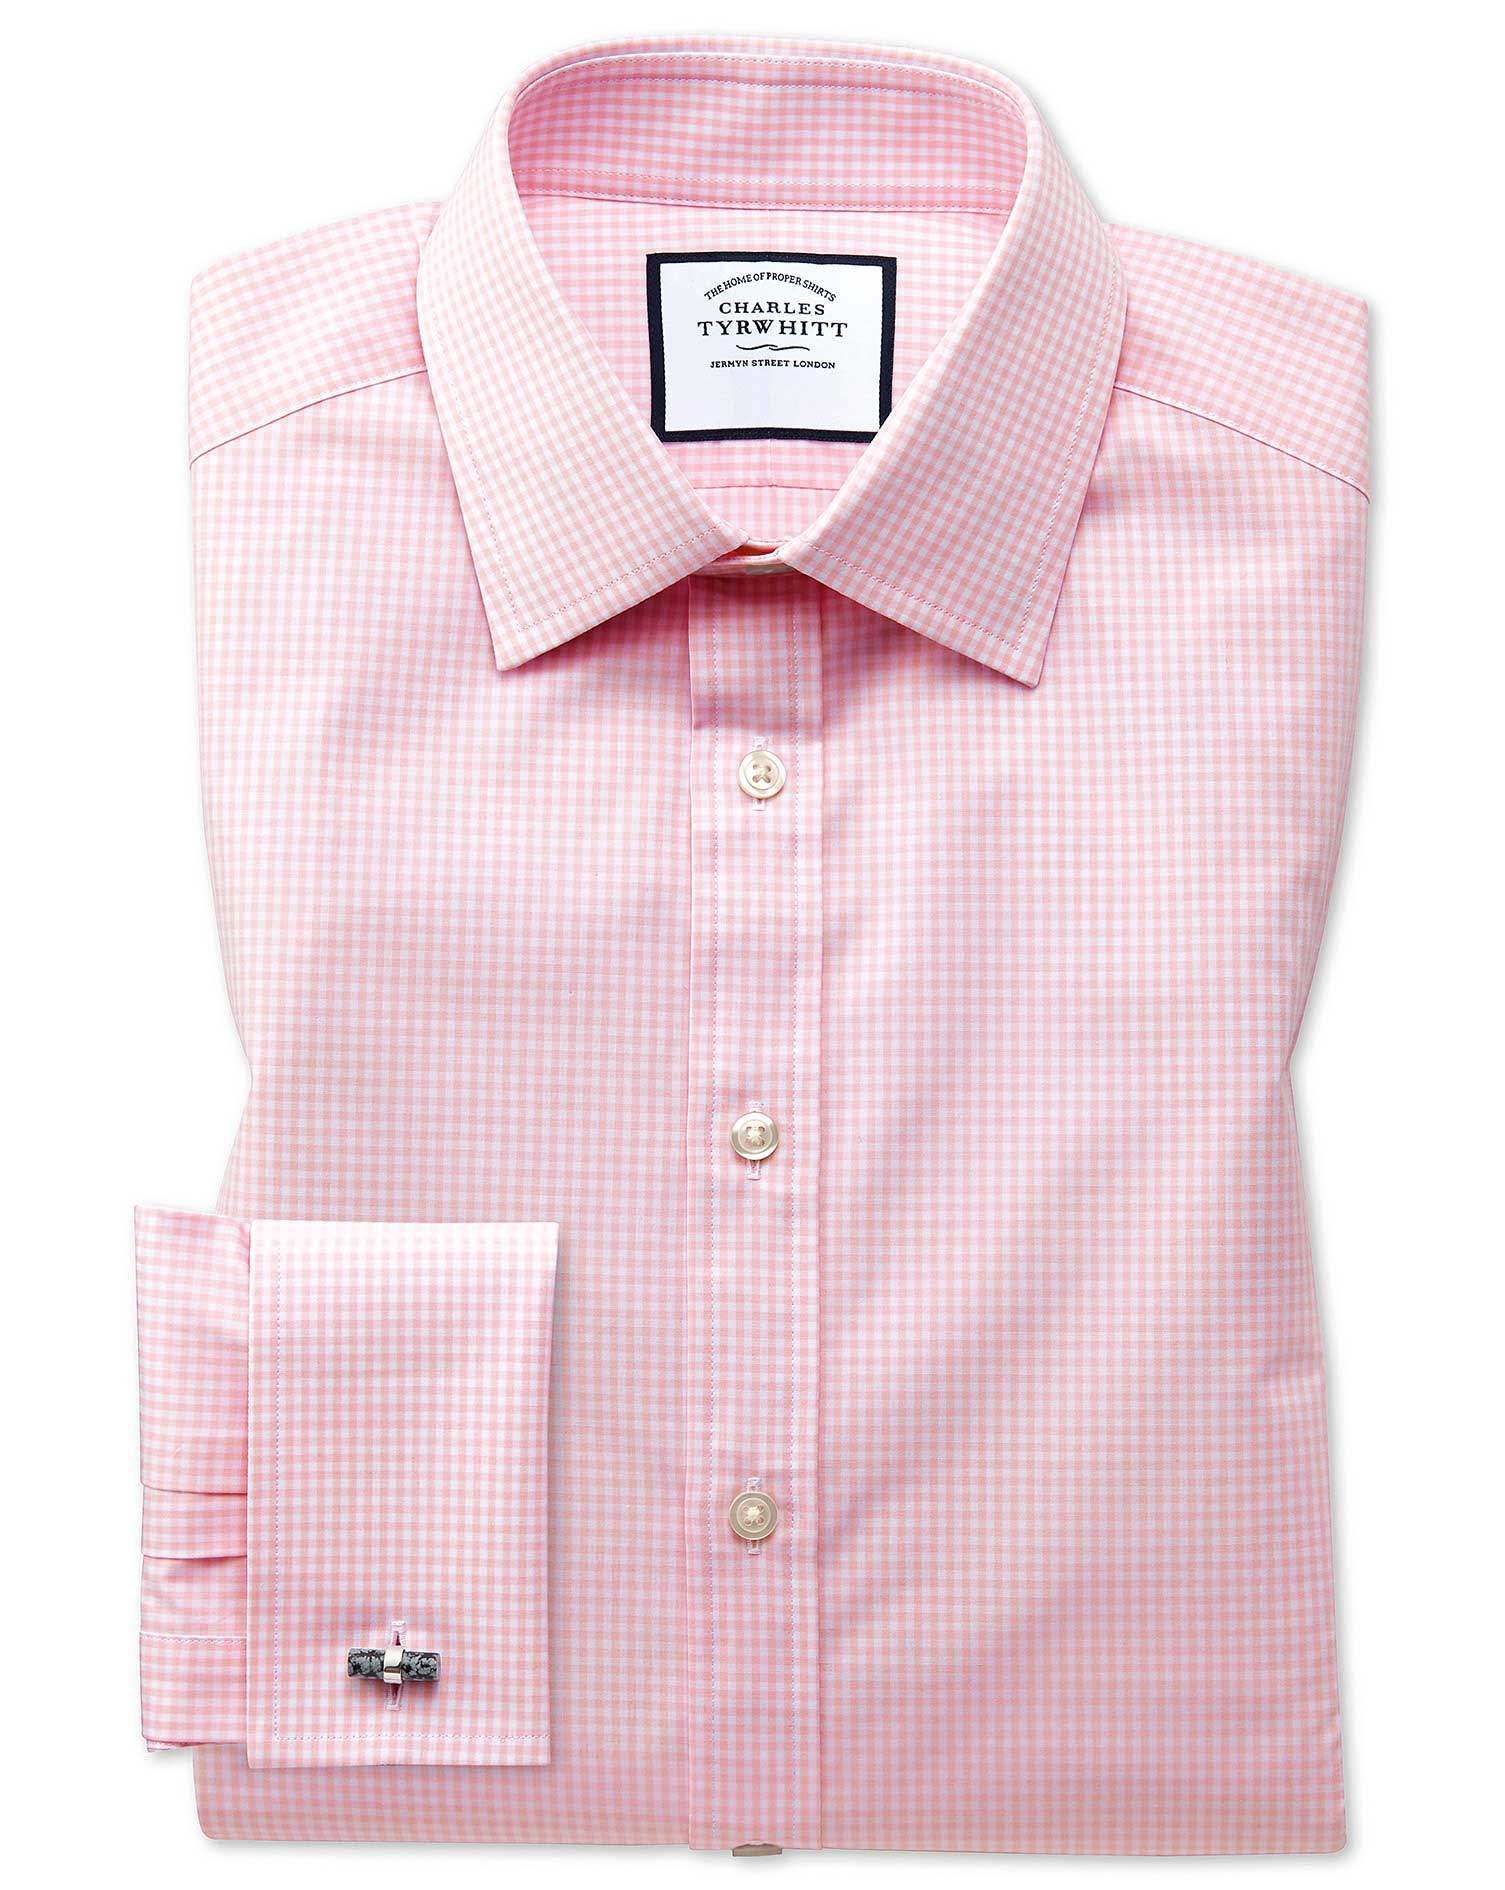 Classic Fit Small Gingham Light Pink Cotton Formal Shirt Double Cuff Size 16.5/33 by Charles Tyrwhit